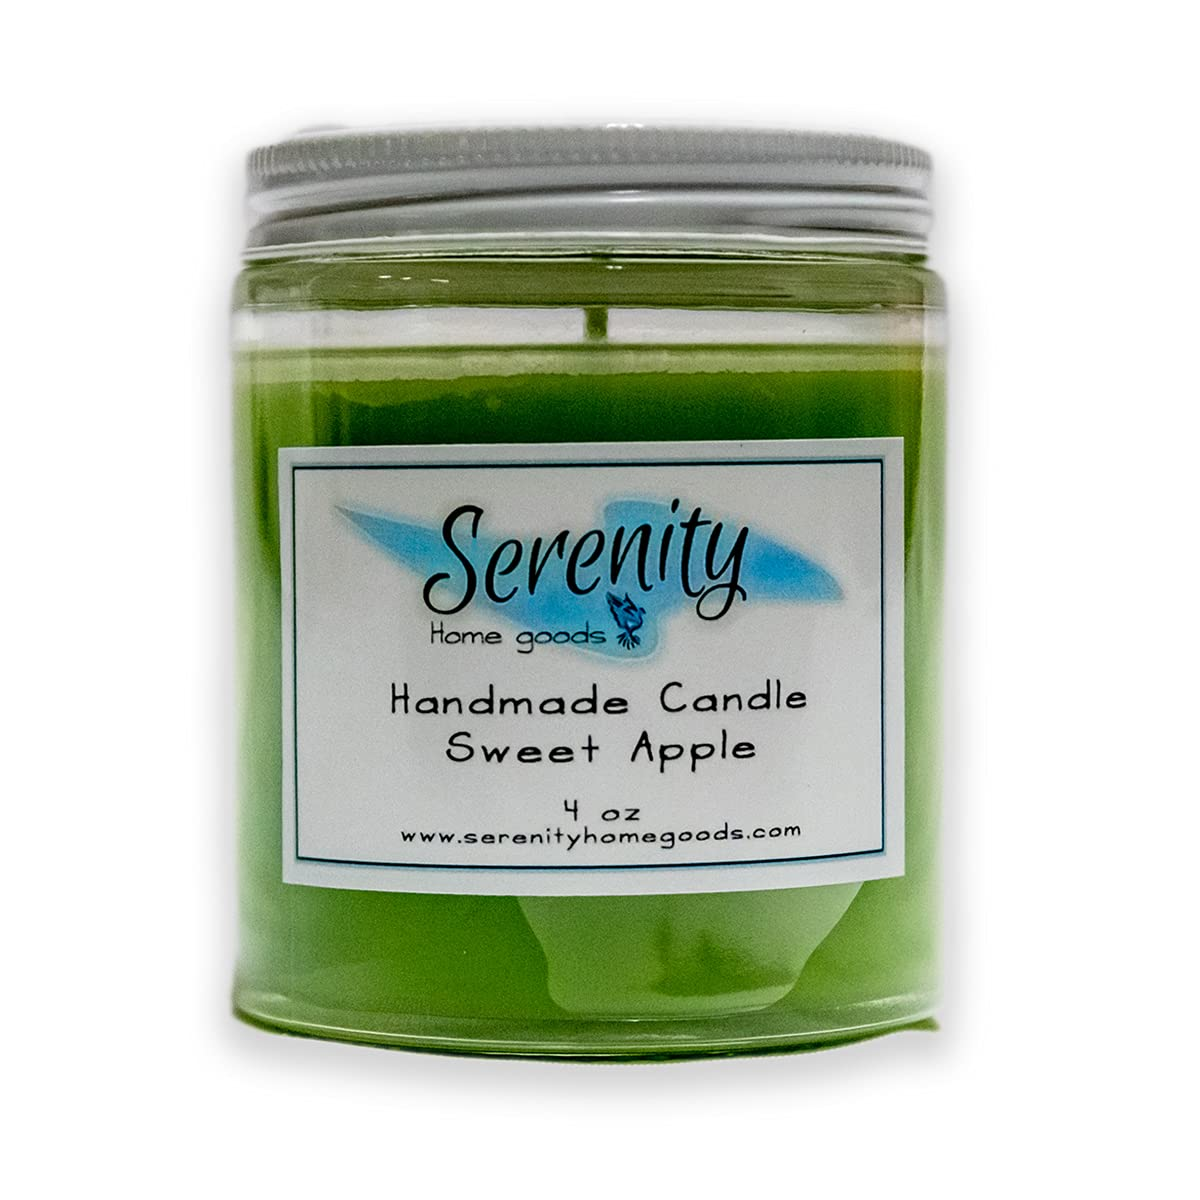 Handmade Scented Candles | Serenity Home Goods | 4oz Clear Glass Jar | Made In The USA | Sweet Apple | Housewarming Gift Christmas Present